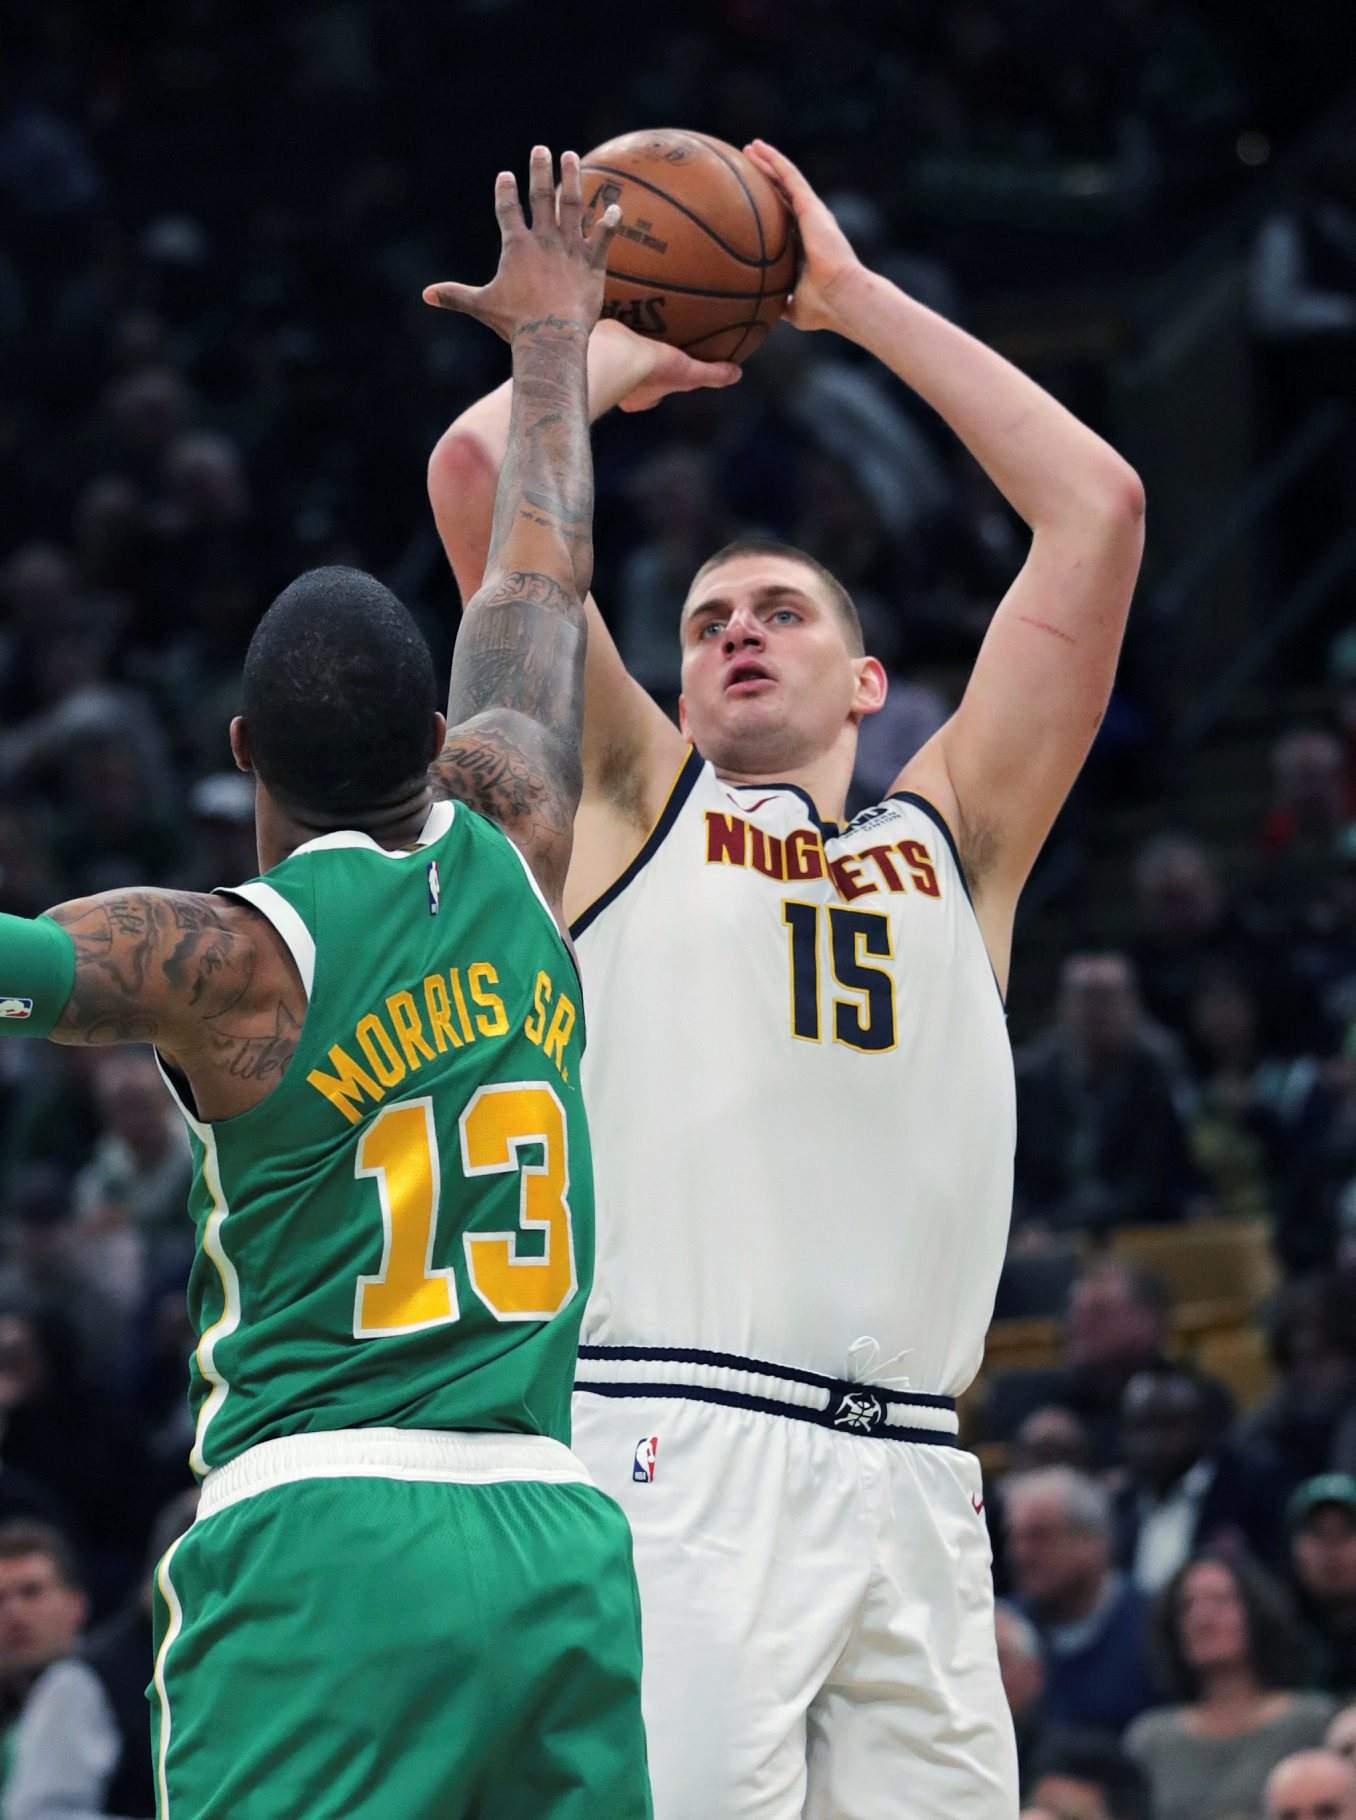 5592c1baa Denver Nuggets center Nikola Jokic shoots over Boston Celtics forward  Marcus Morris during the second half Monday s game in Boston.